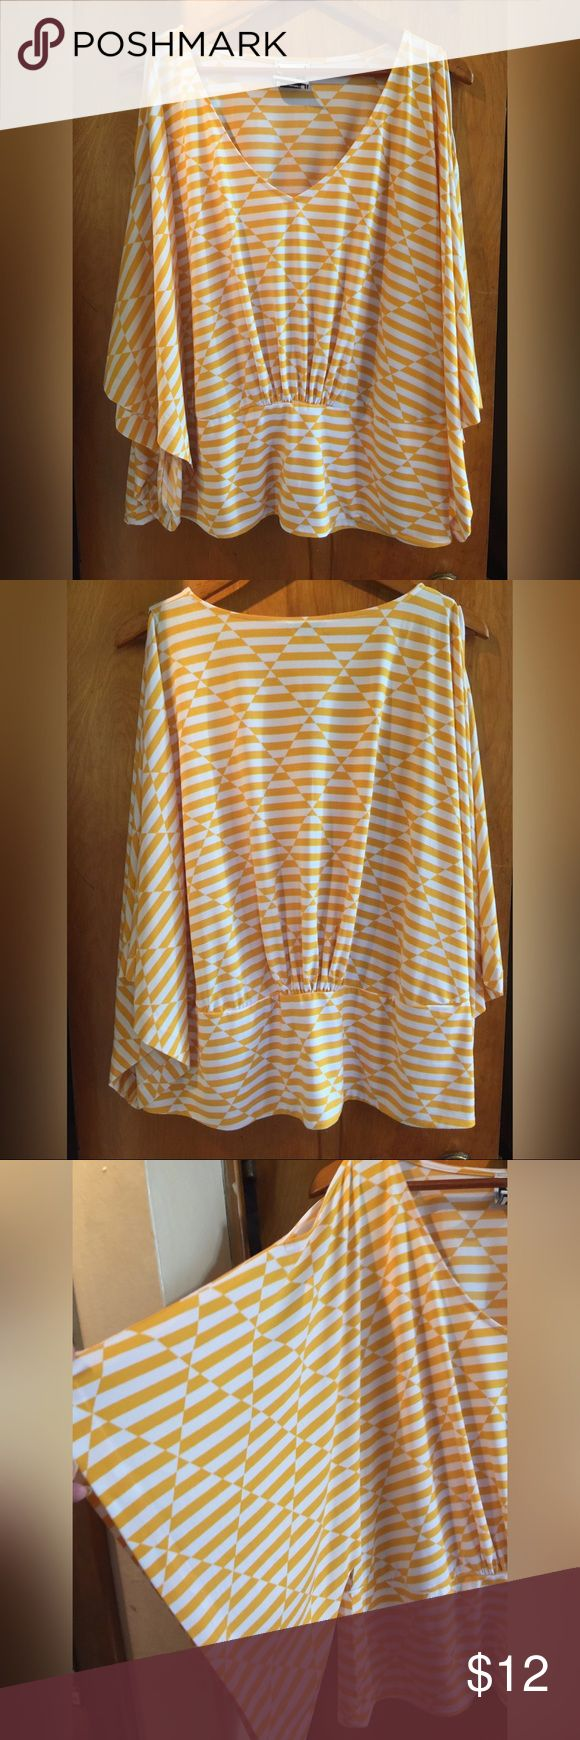 Cold shoulder top Yellow and white knit top. Cold shoulder top with batwing sleeves. There is an elastic gathering the back. Very cute. Very good condition Tops